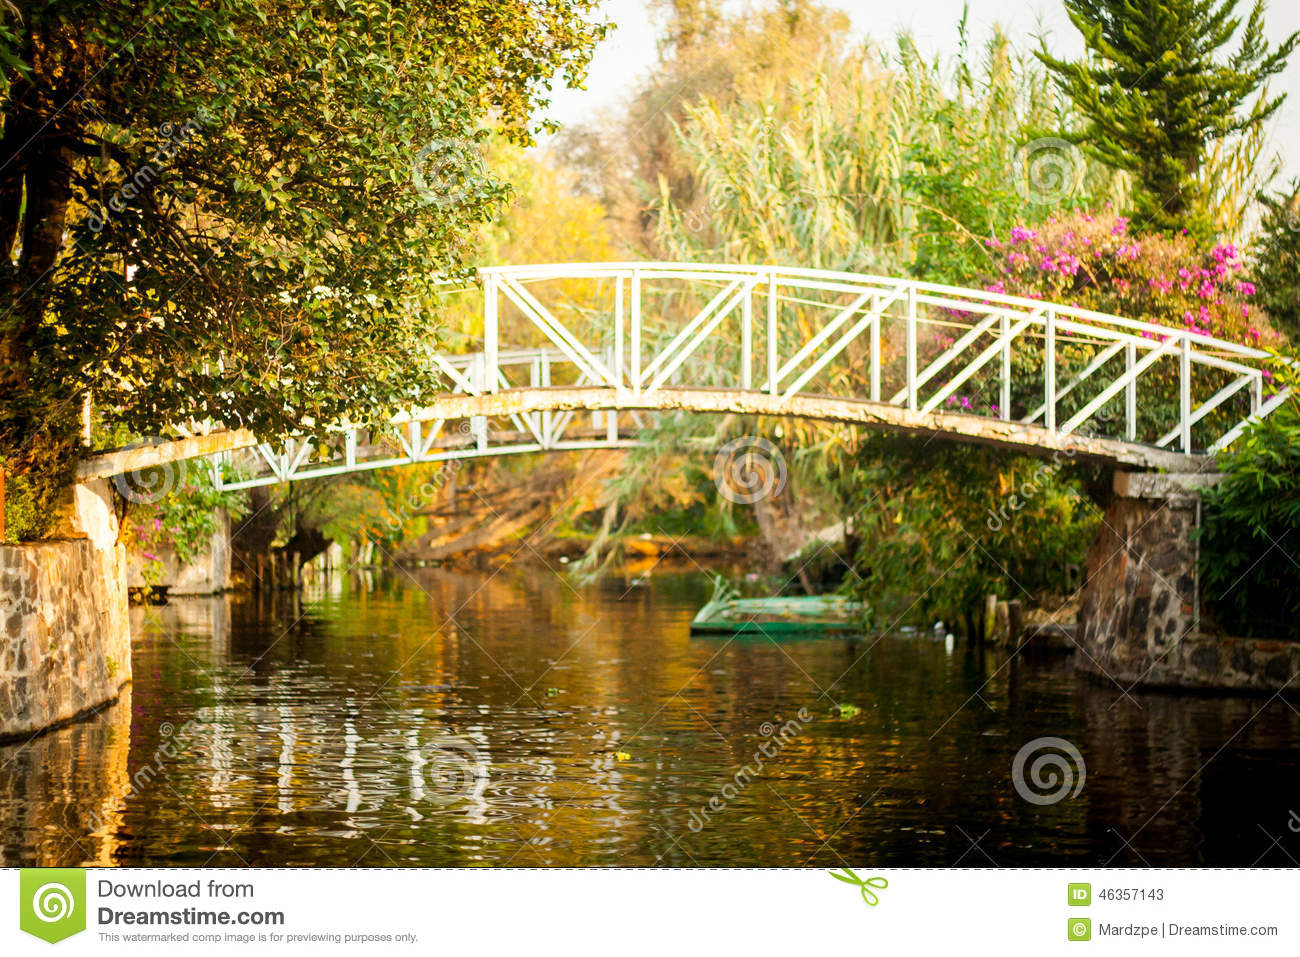 Colourful Mexico Xochimilco 39 S Floating Gardens In Mexico City Stock Image Image 46357143